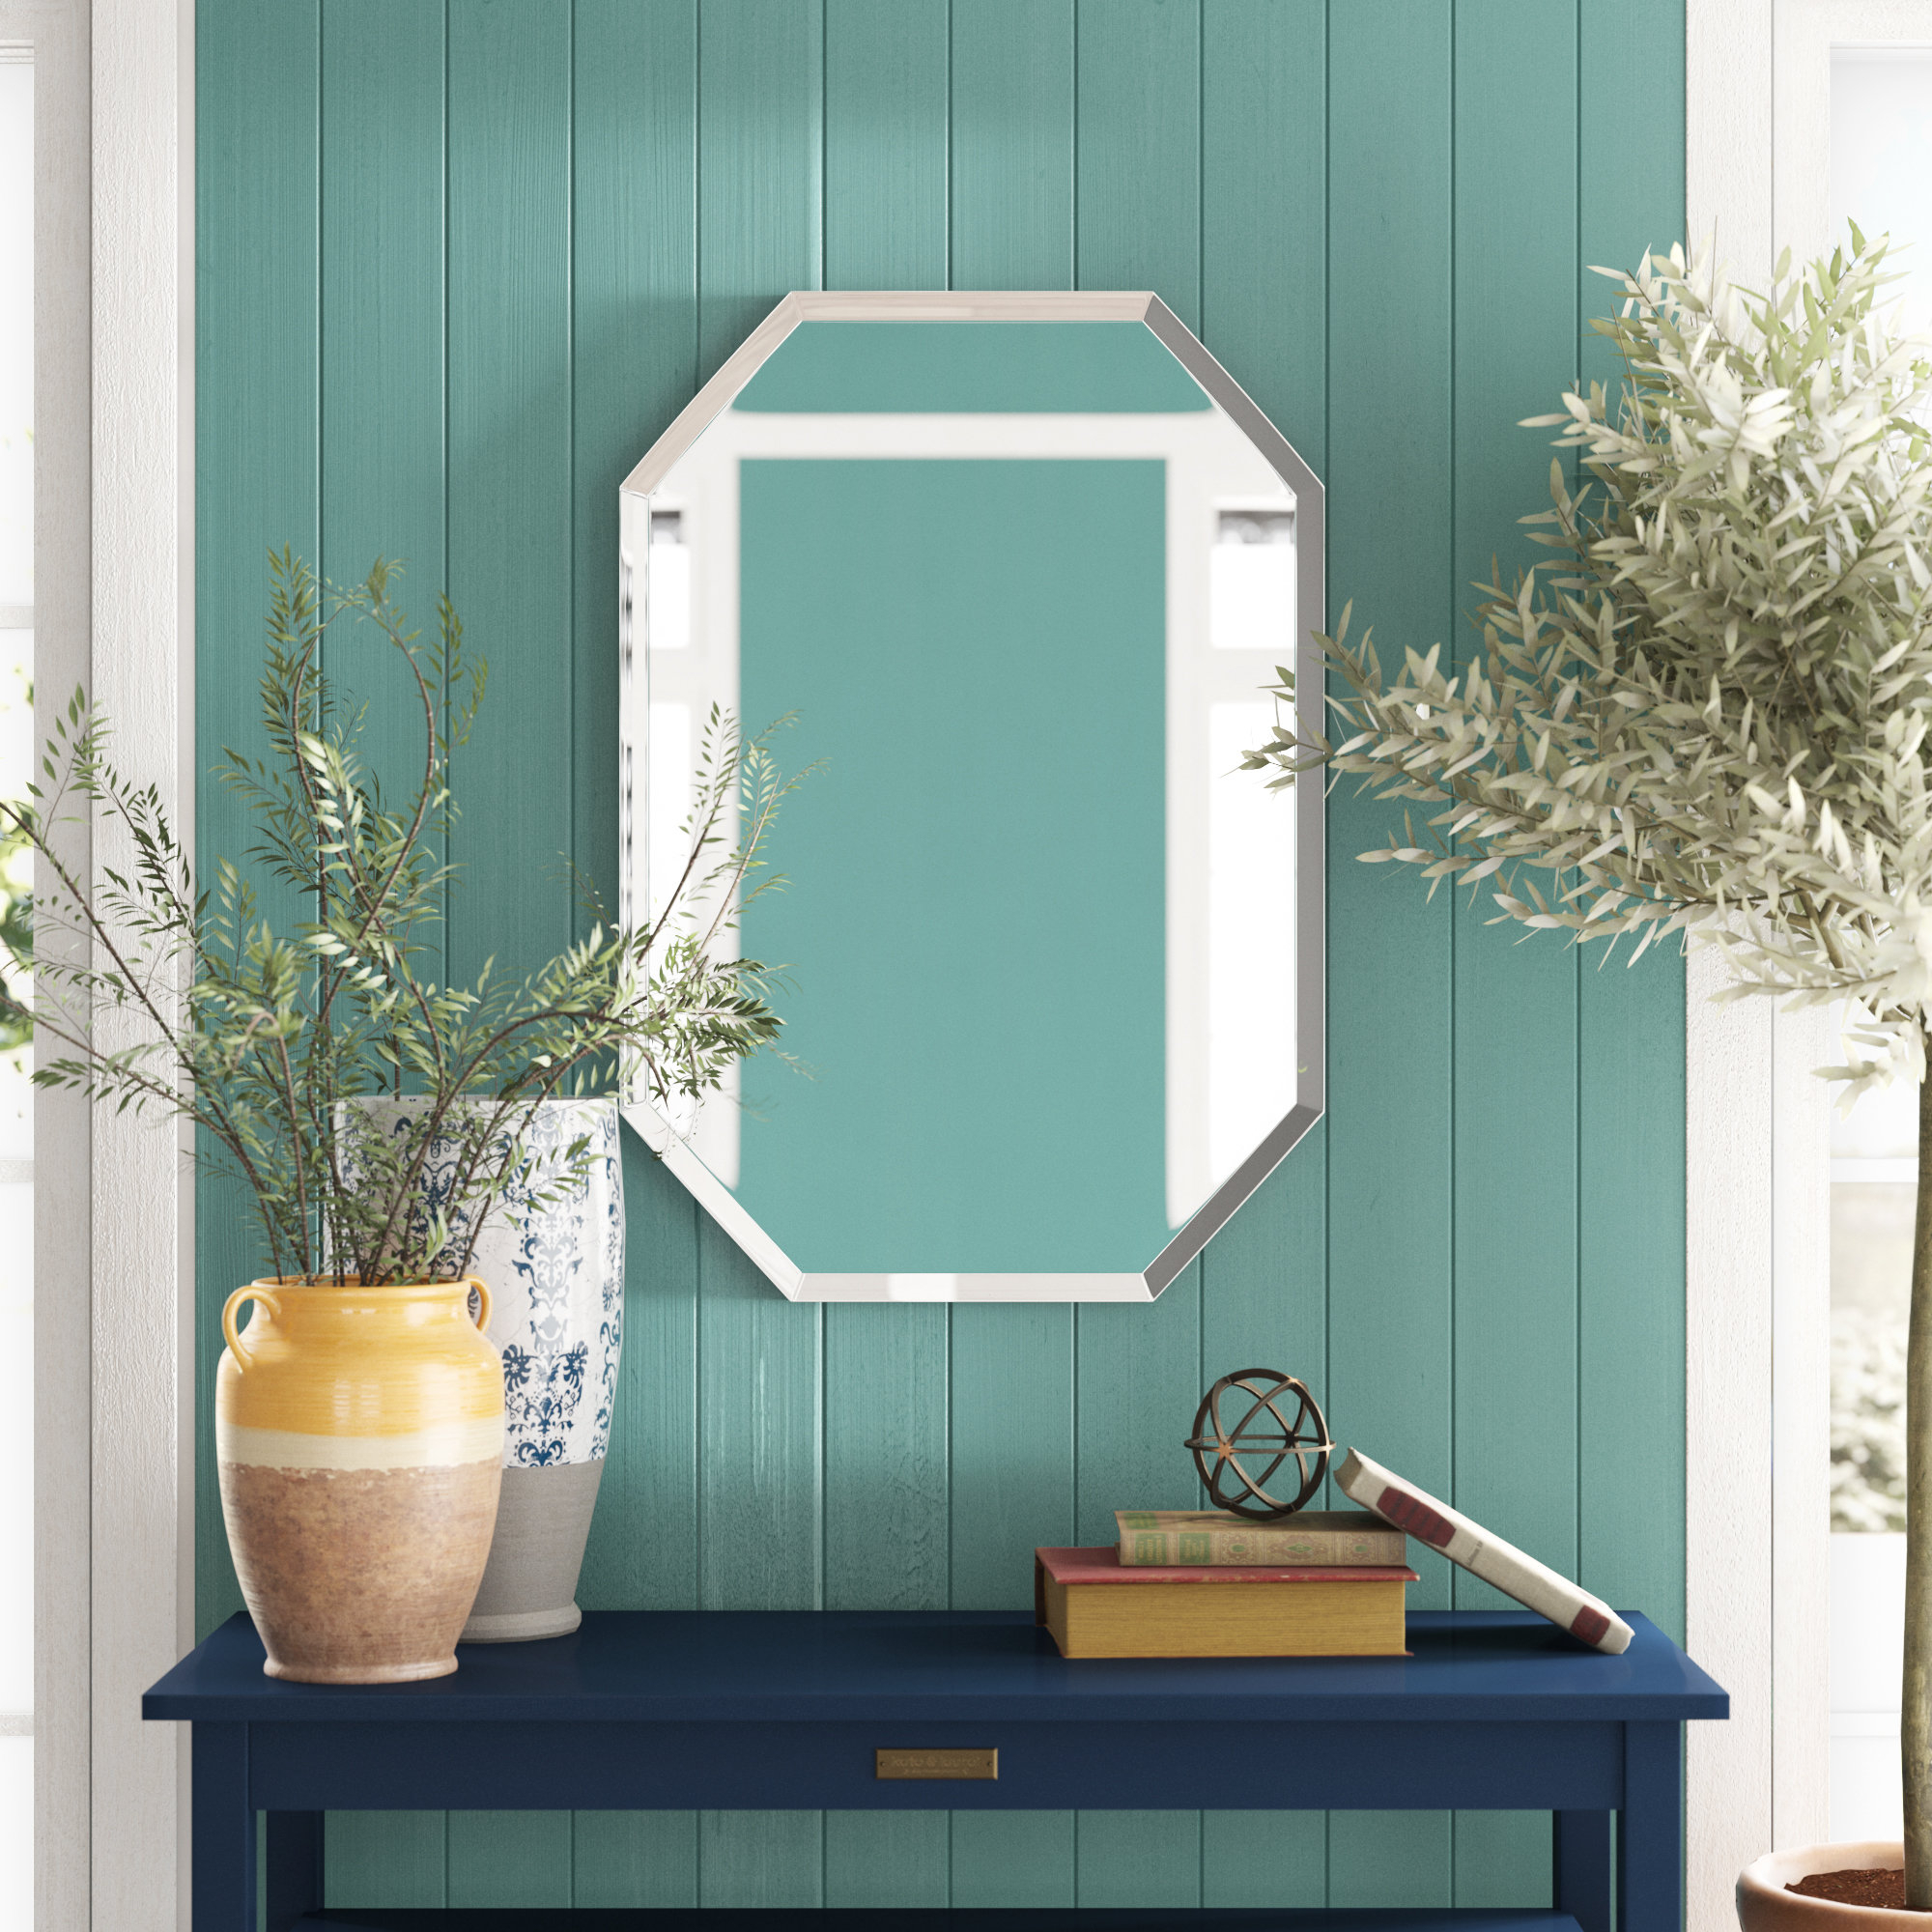 Top 10 Vanity Mirrors Under $200 | Wayfair Pertaining To Burgoyne Vanity Mirrors (View 18 of 20)